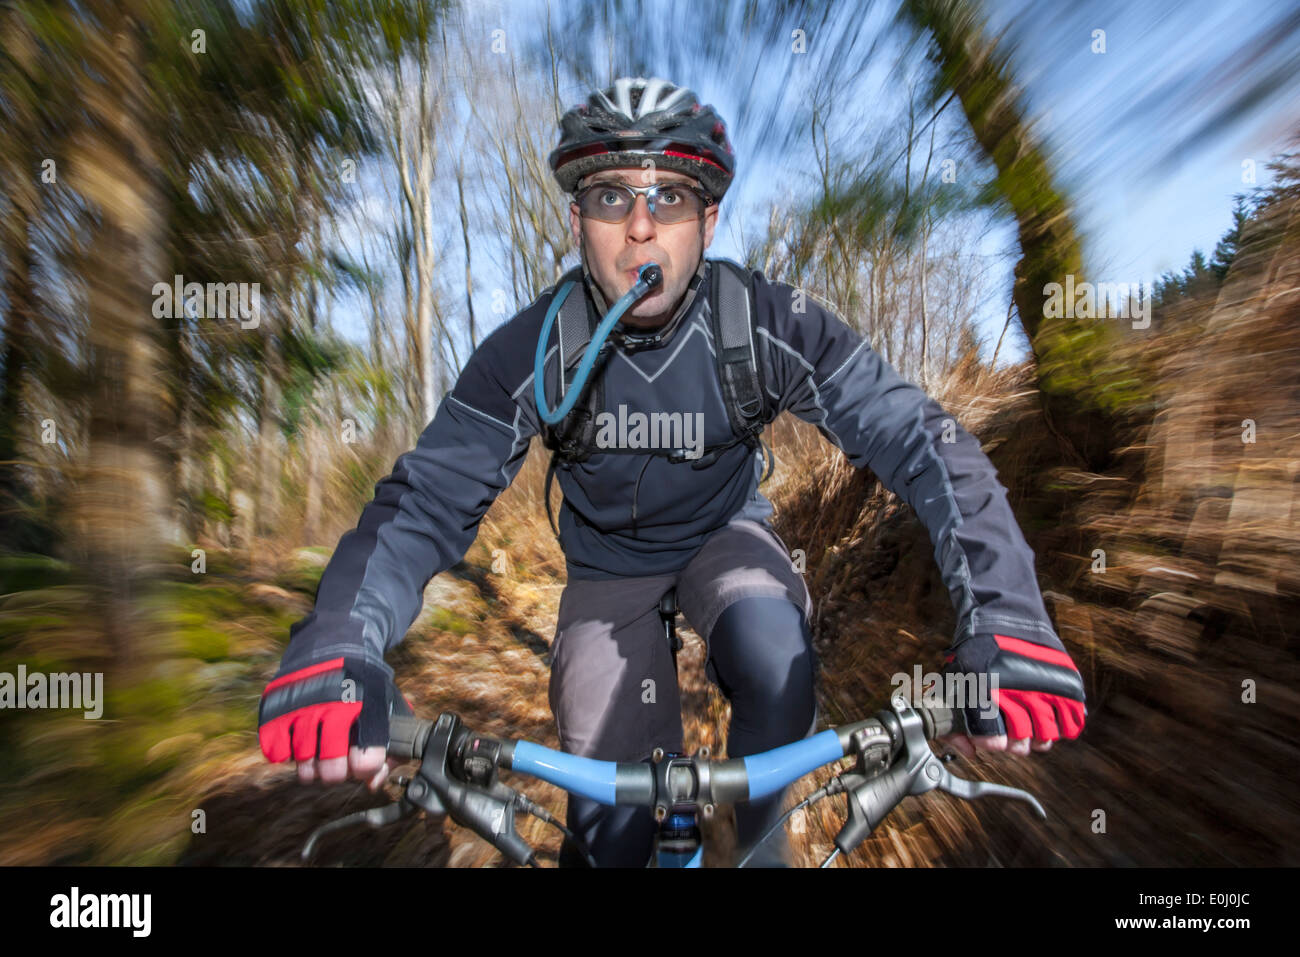 Male mountain biker drinking from a hydration pack. - Stock Image